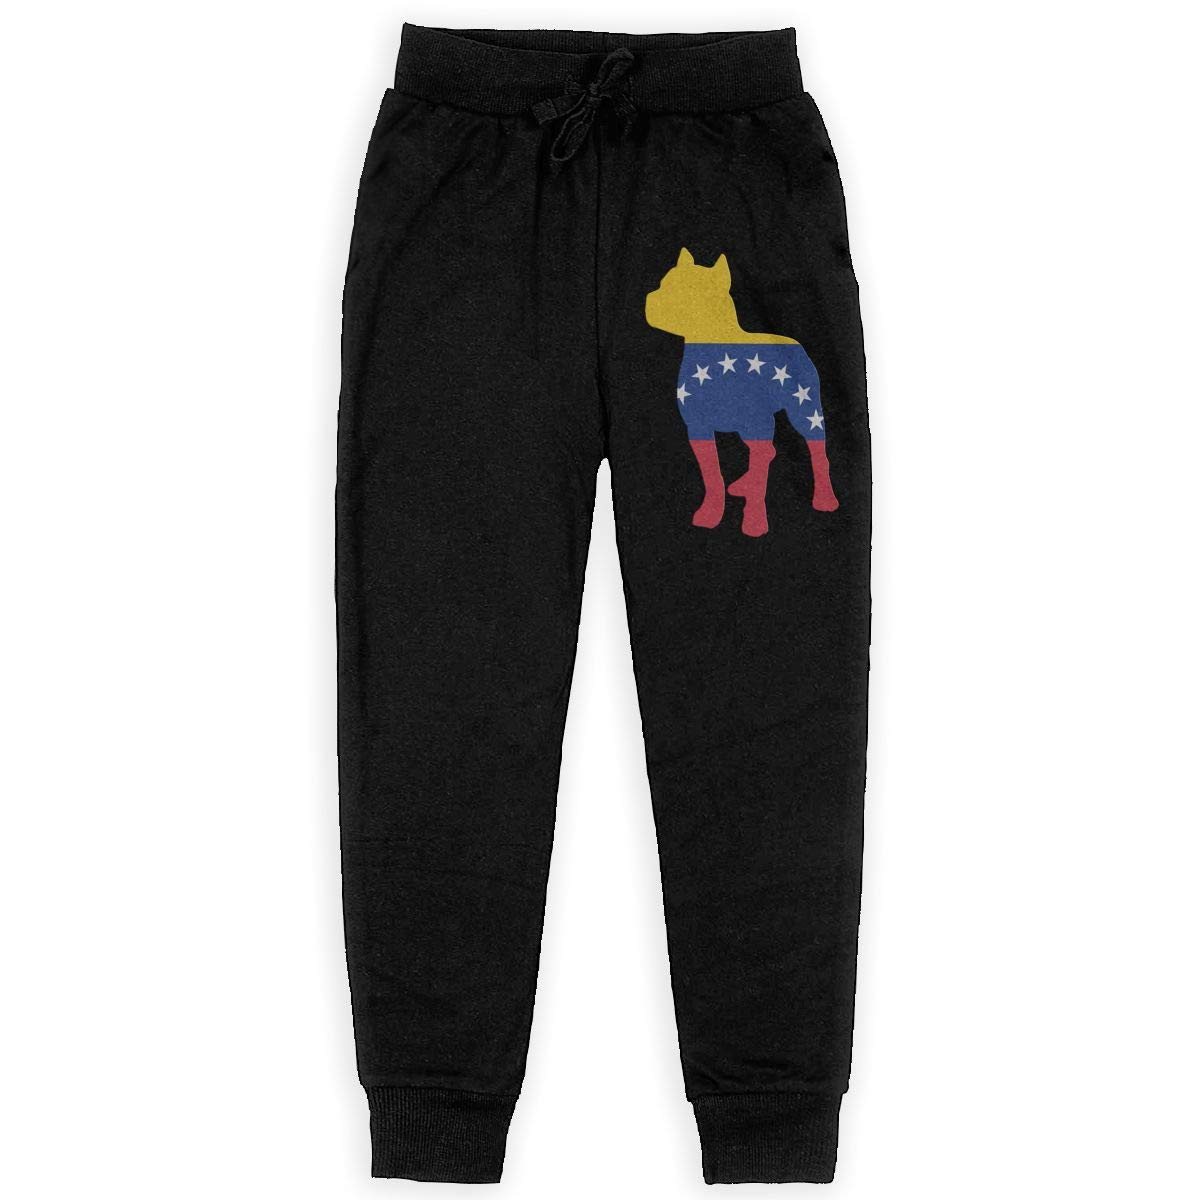 MAOYI/&J6 Patriotic Pitbull Venezuela Flag Long Sweatpants Teenager Boys Girls Jogger Pants with Drawstring